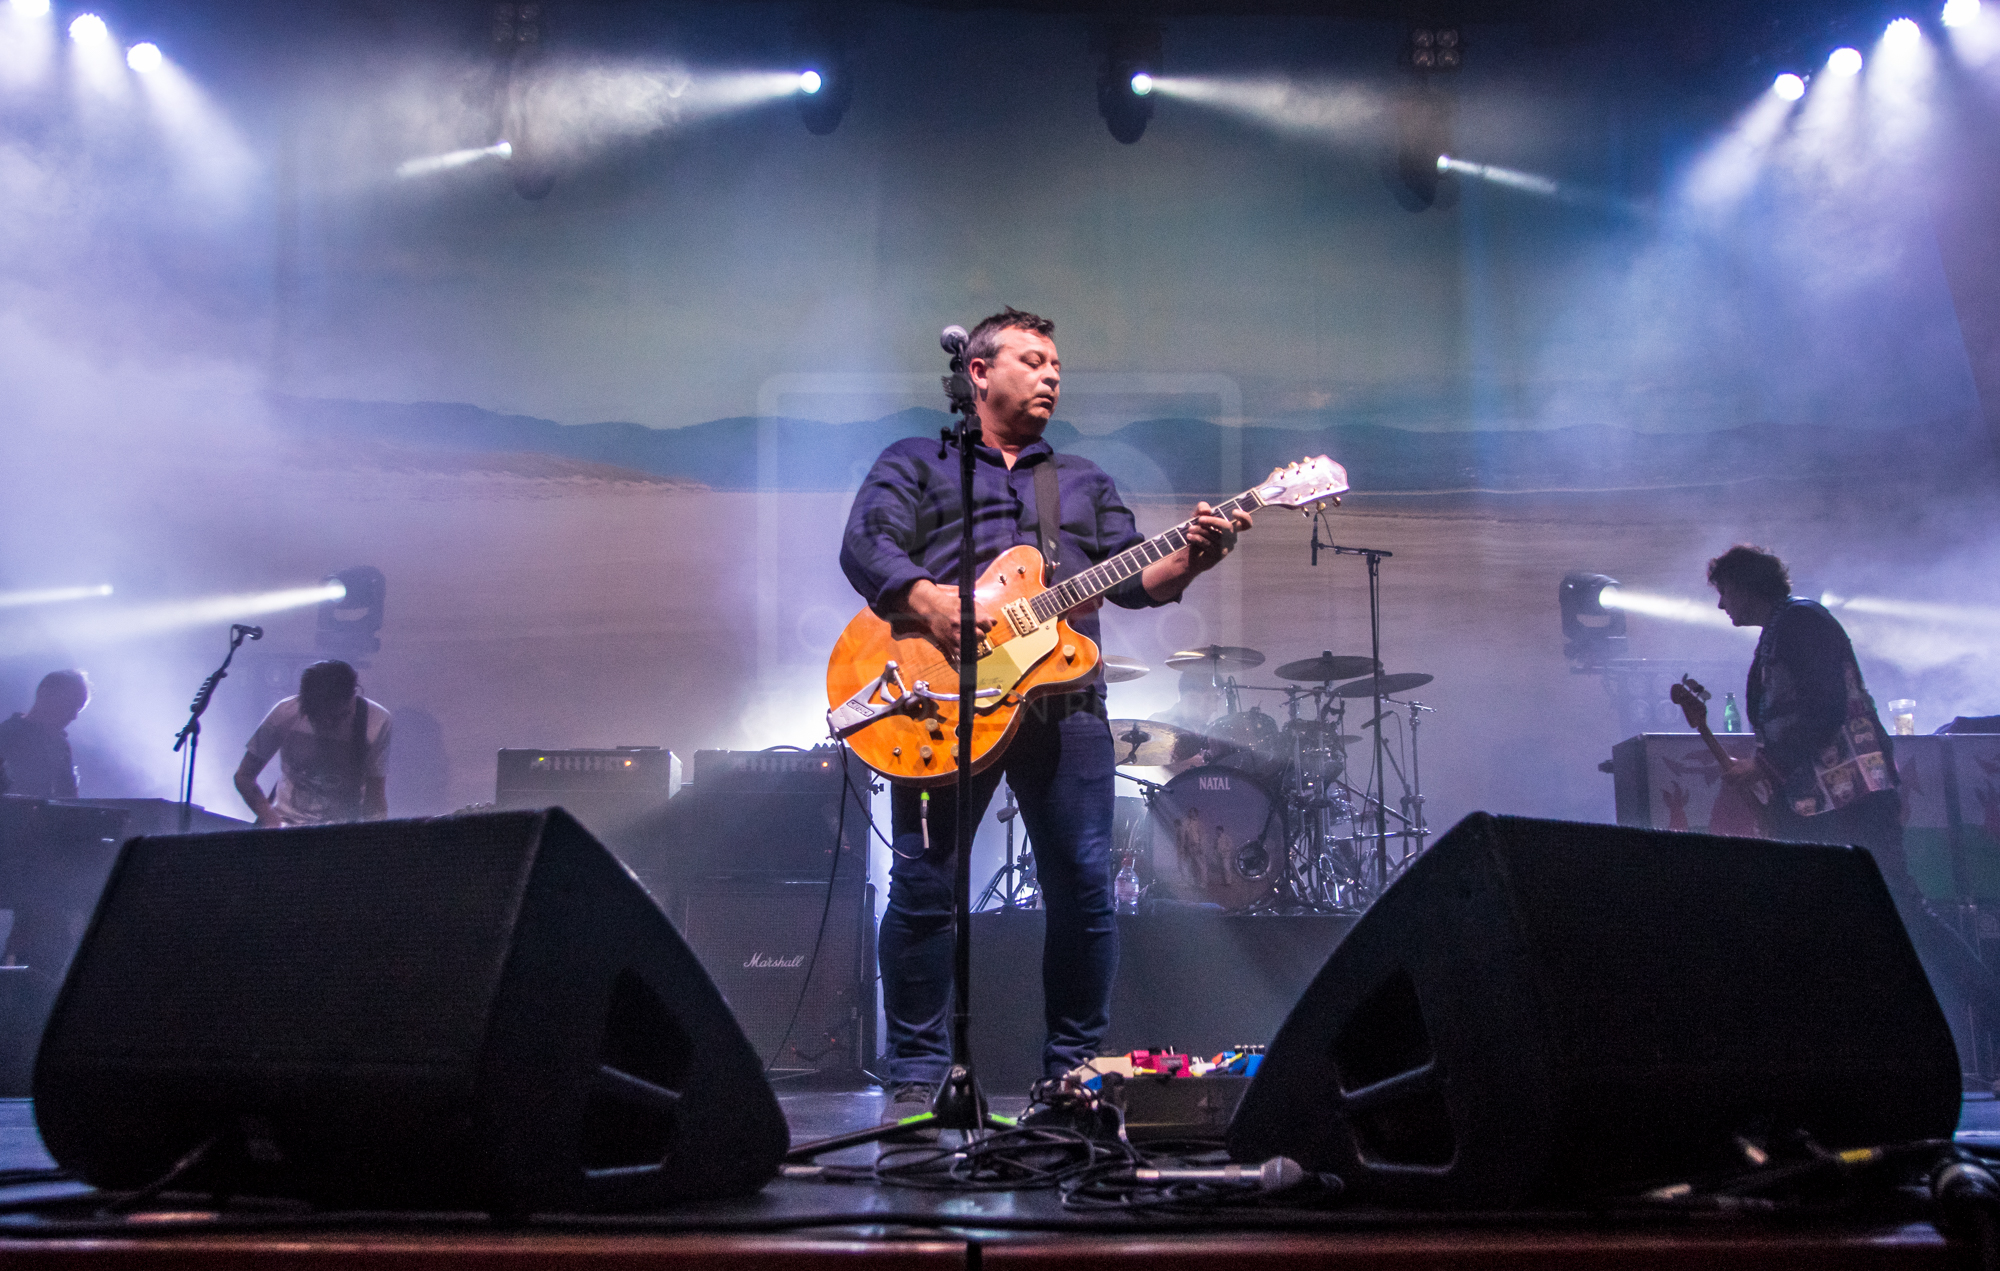 MANIC STREET PREACHERS PERFORMING AT EDINBURGH'S USHER HALL - 26.05.2019  PICTURE BY: | STEPHEN WILSON PHOTOGRAPHY